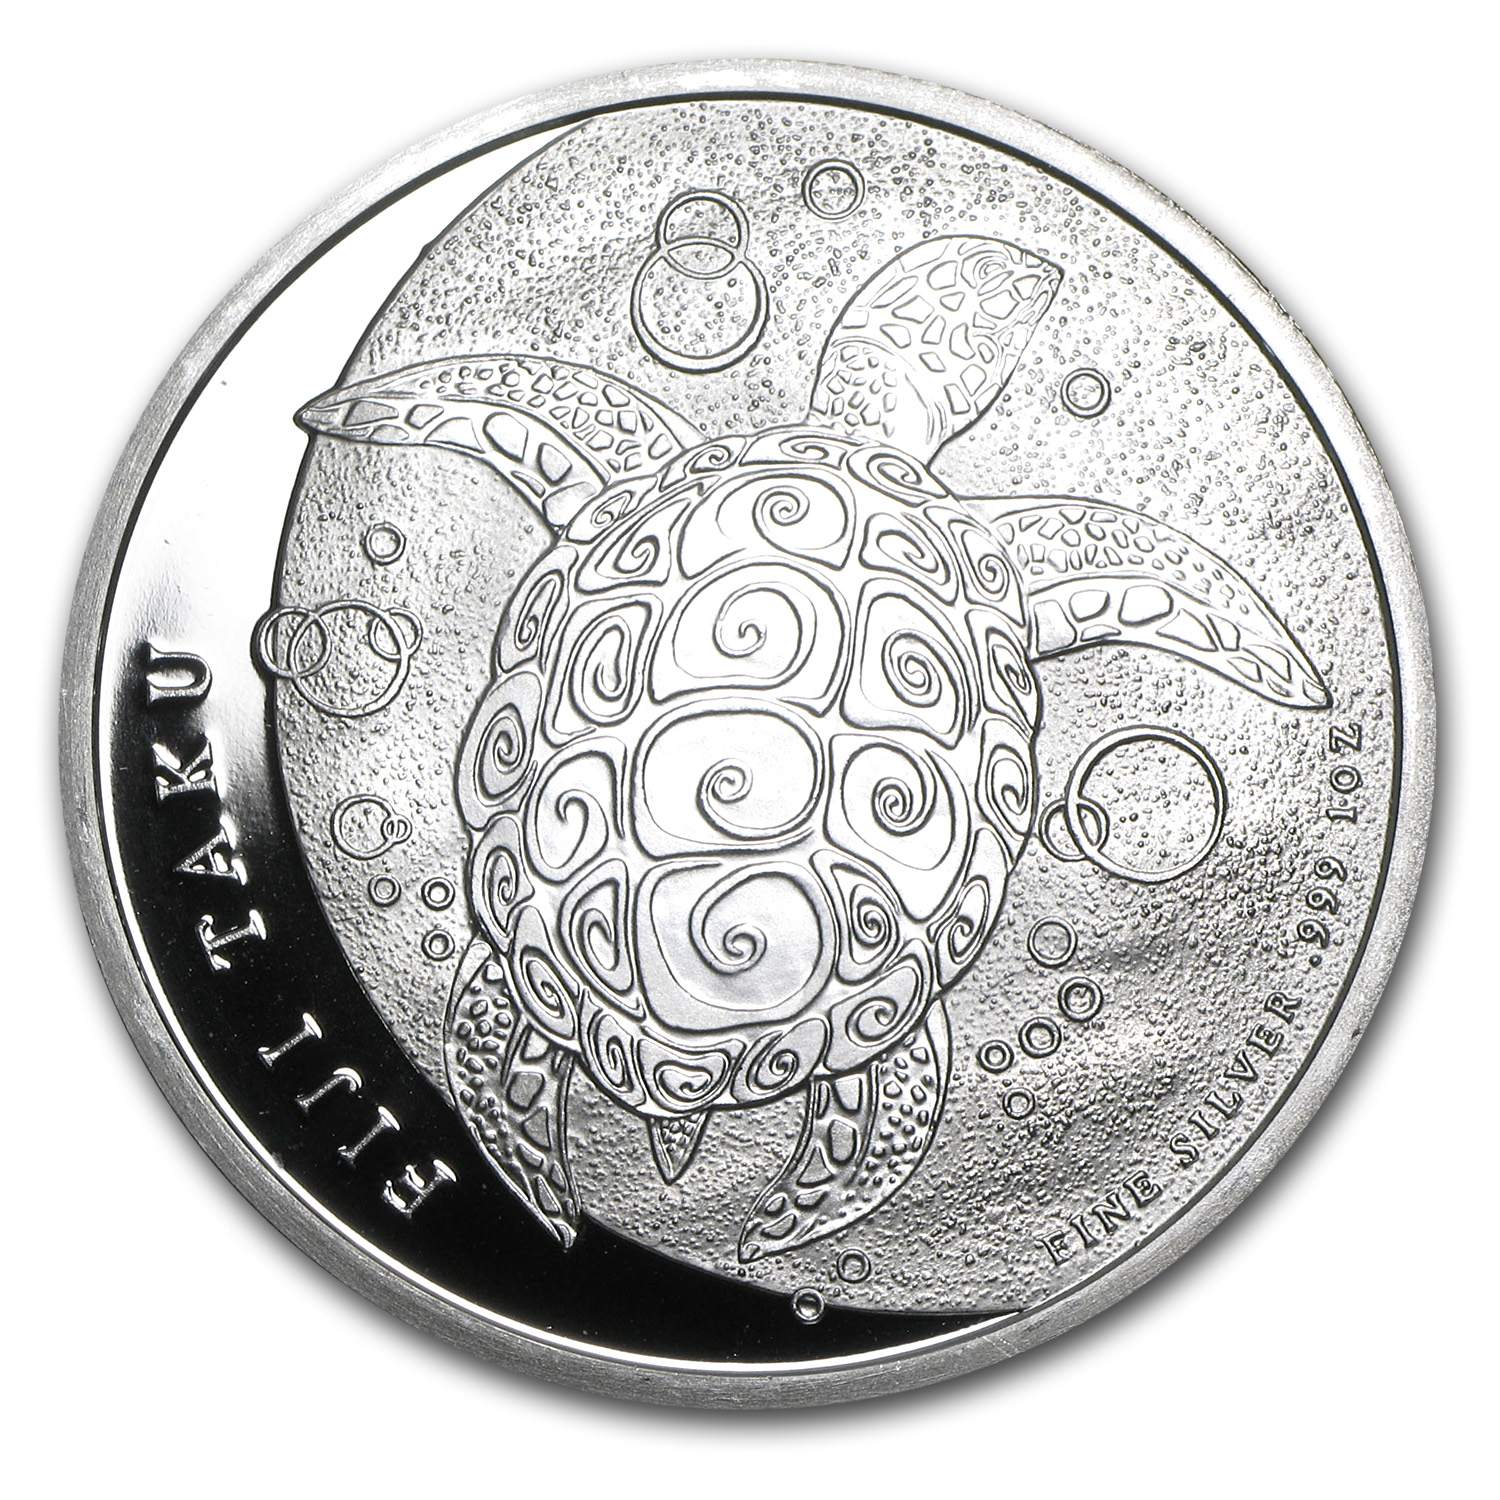 2011 1 oz Silver New Zealand Mint $2 Fiji Taku .999